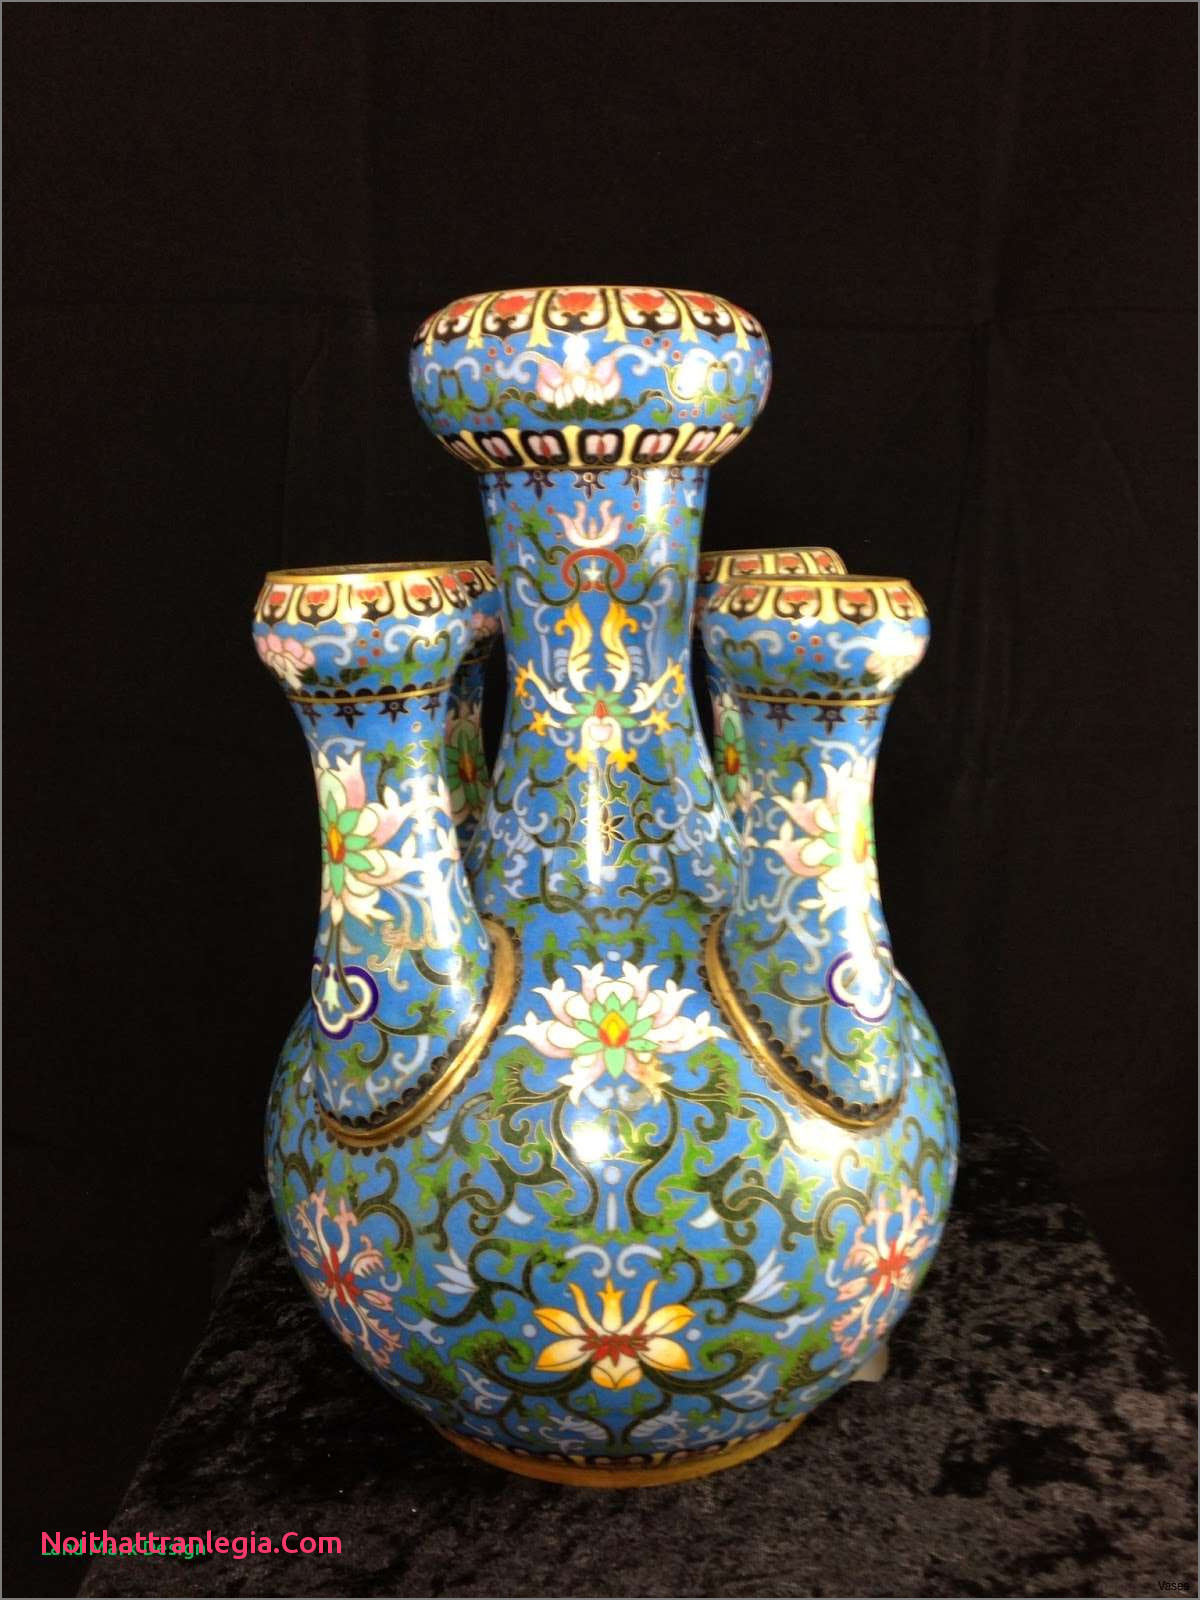 chinese enamel vase of 20 chinese antique vase noithattranlegia vases design intended for 213 1h vases antique asian the increased trade of chinese ware during 16th century has significantly